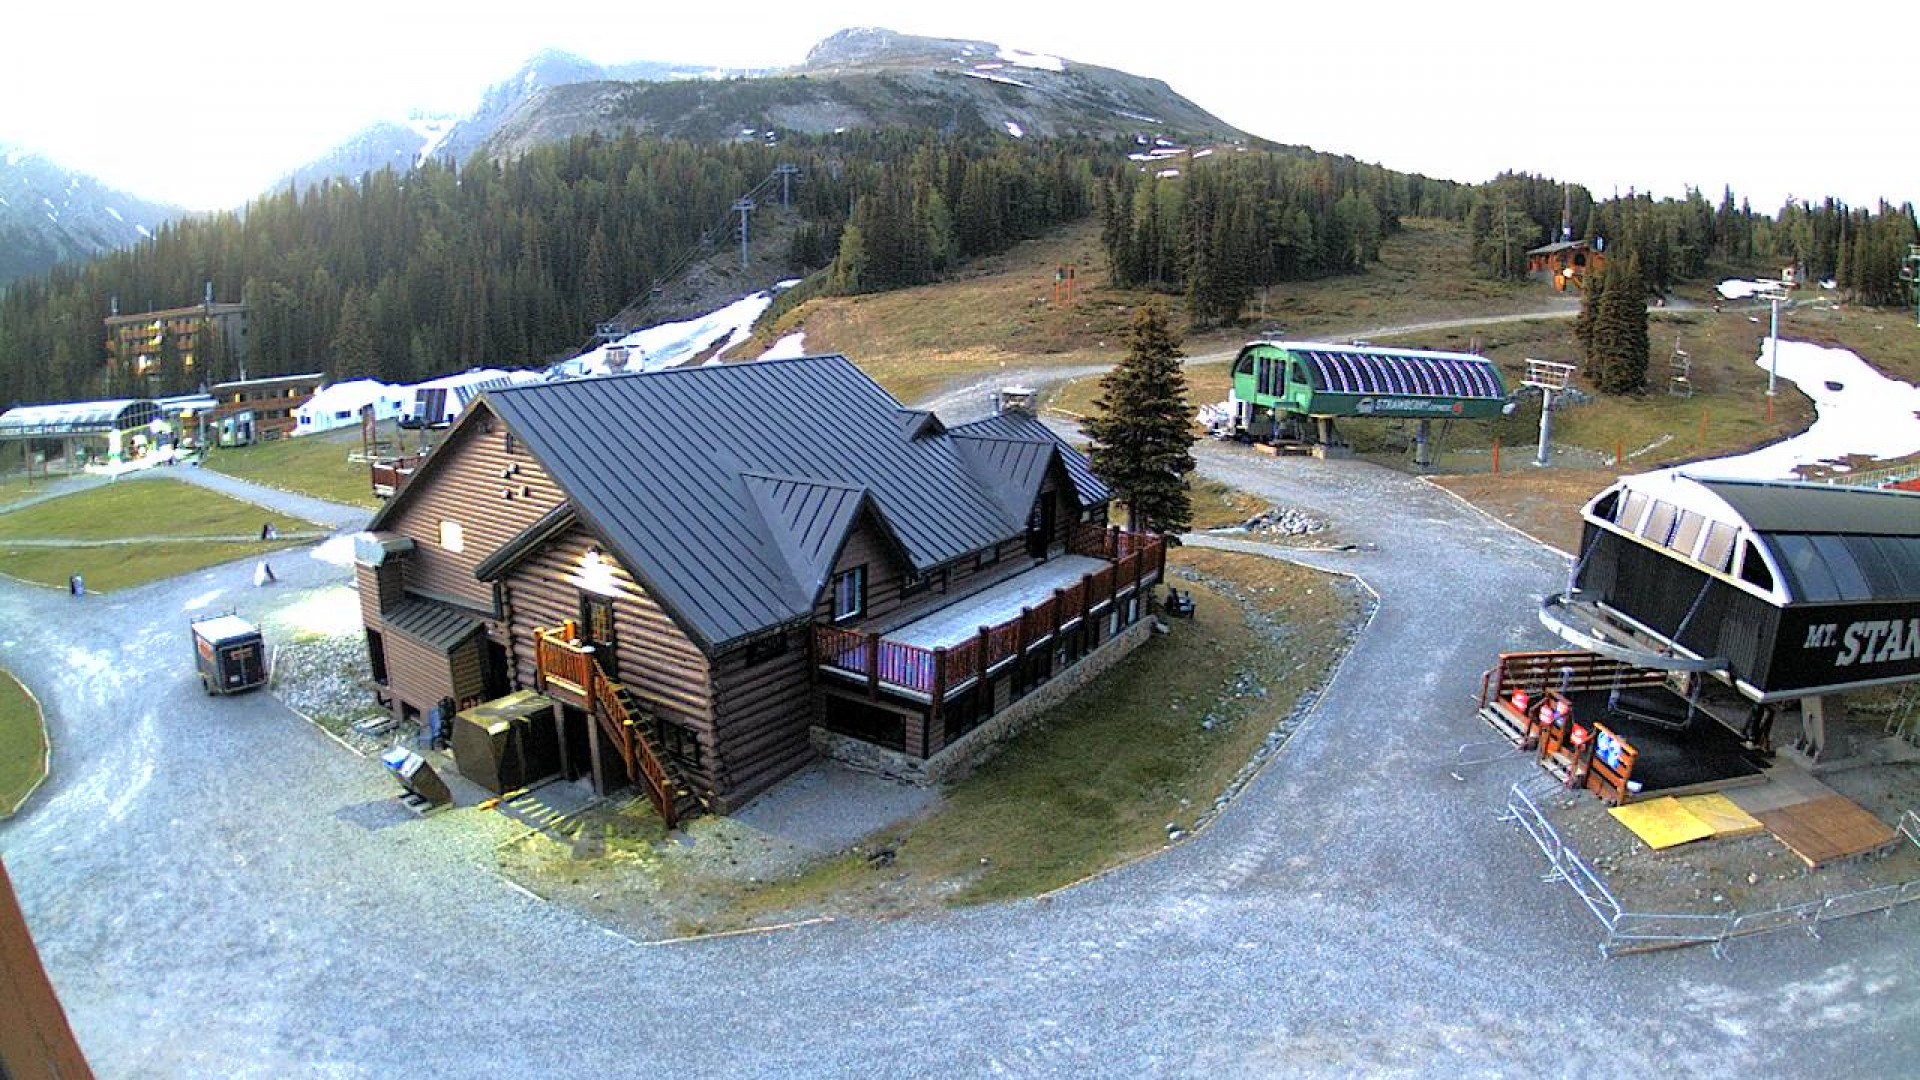 Sunshine Village Webcam 2